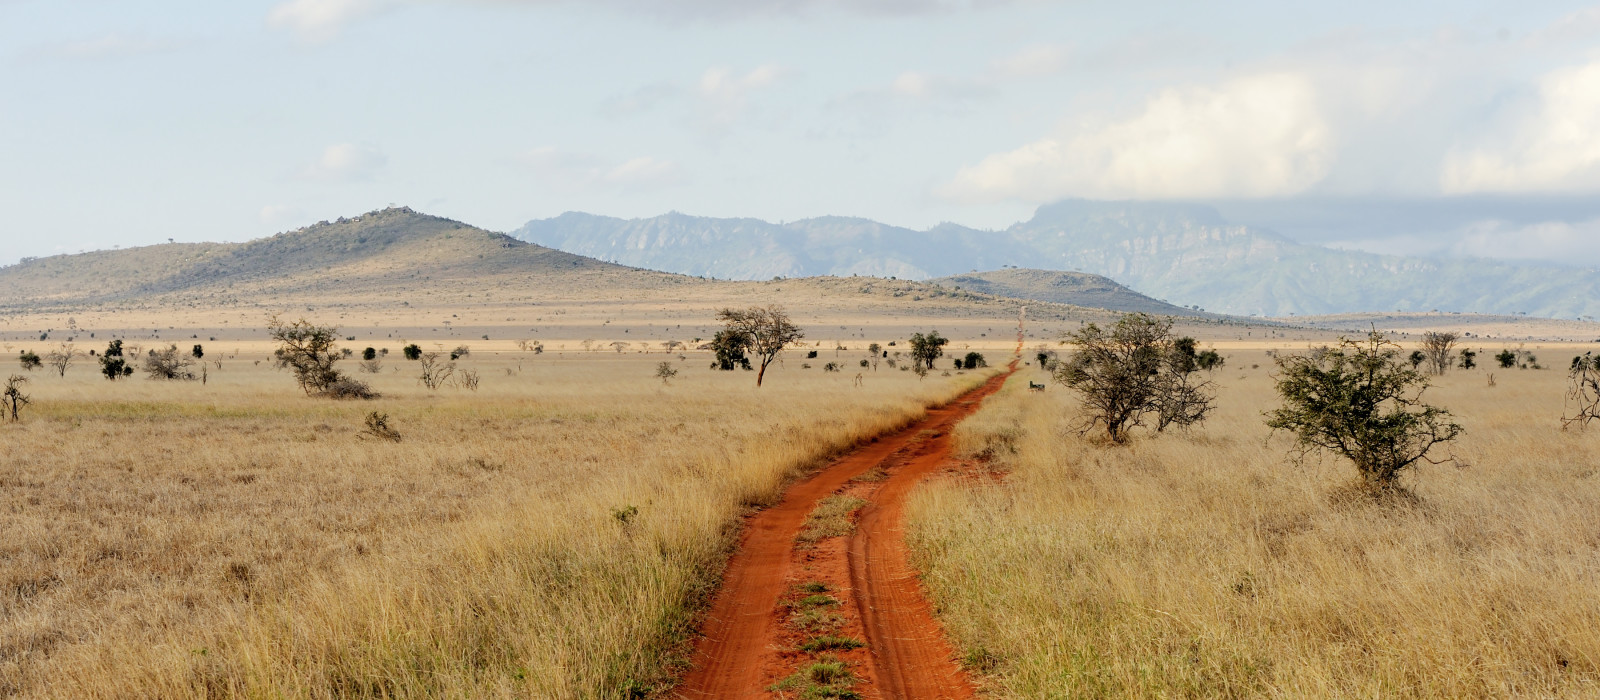 Savannah landscape in the National park in Kenya, Africa